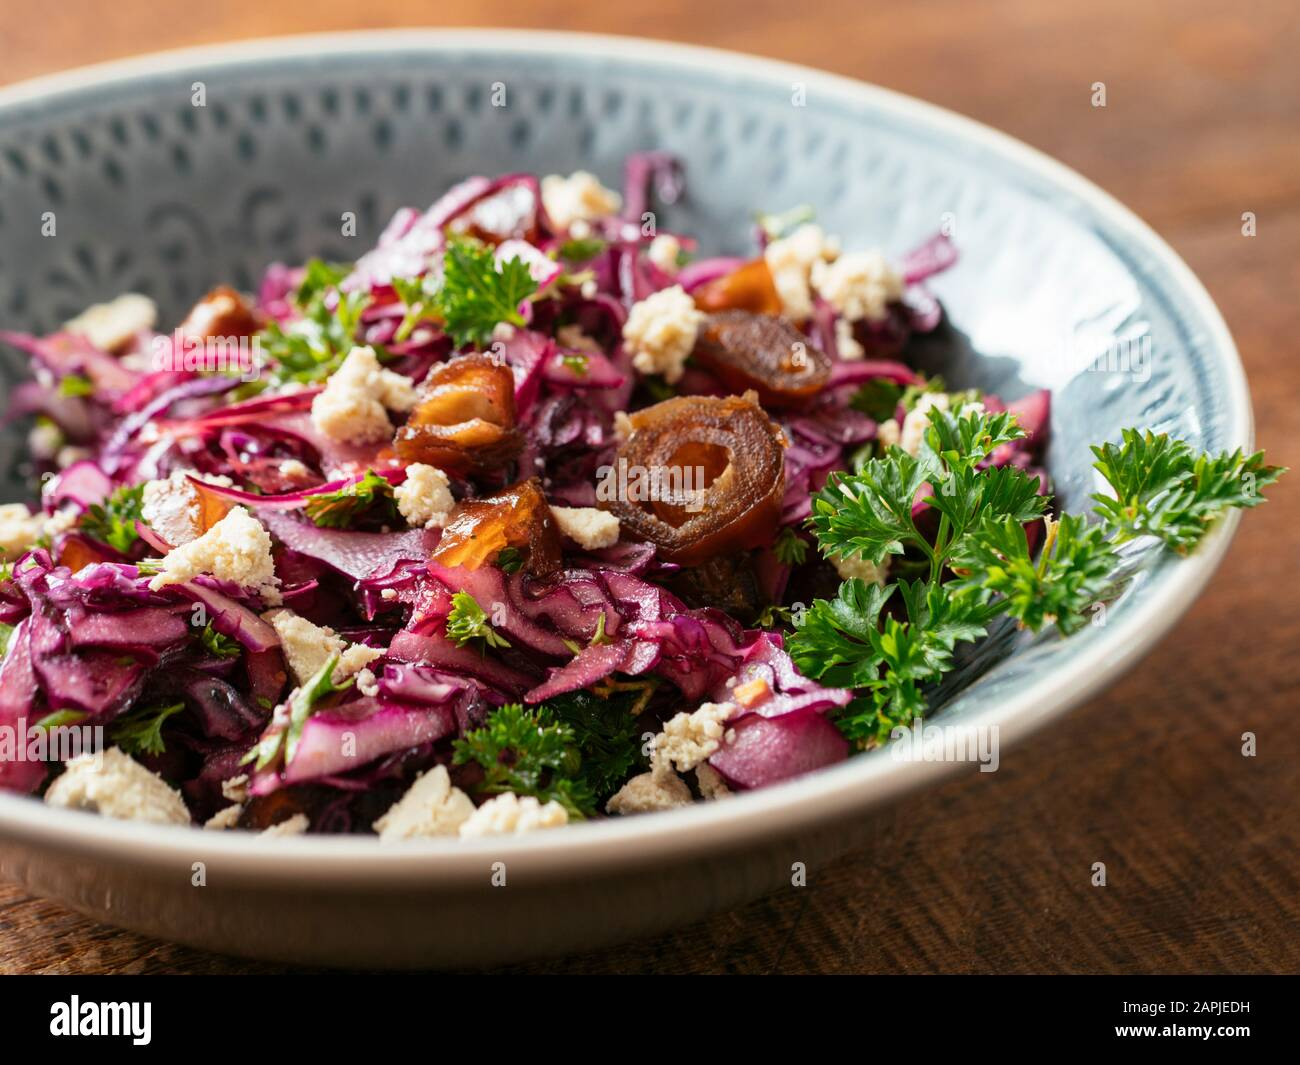 Red Cabbage Slaw with Dates and home made Vegan feta. Stock Photo